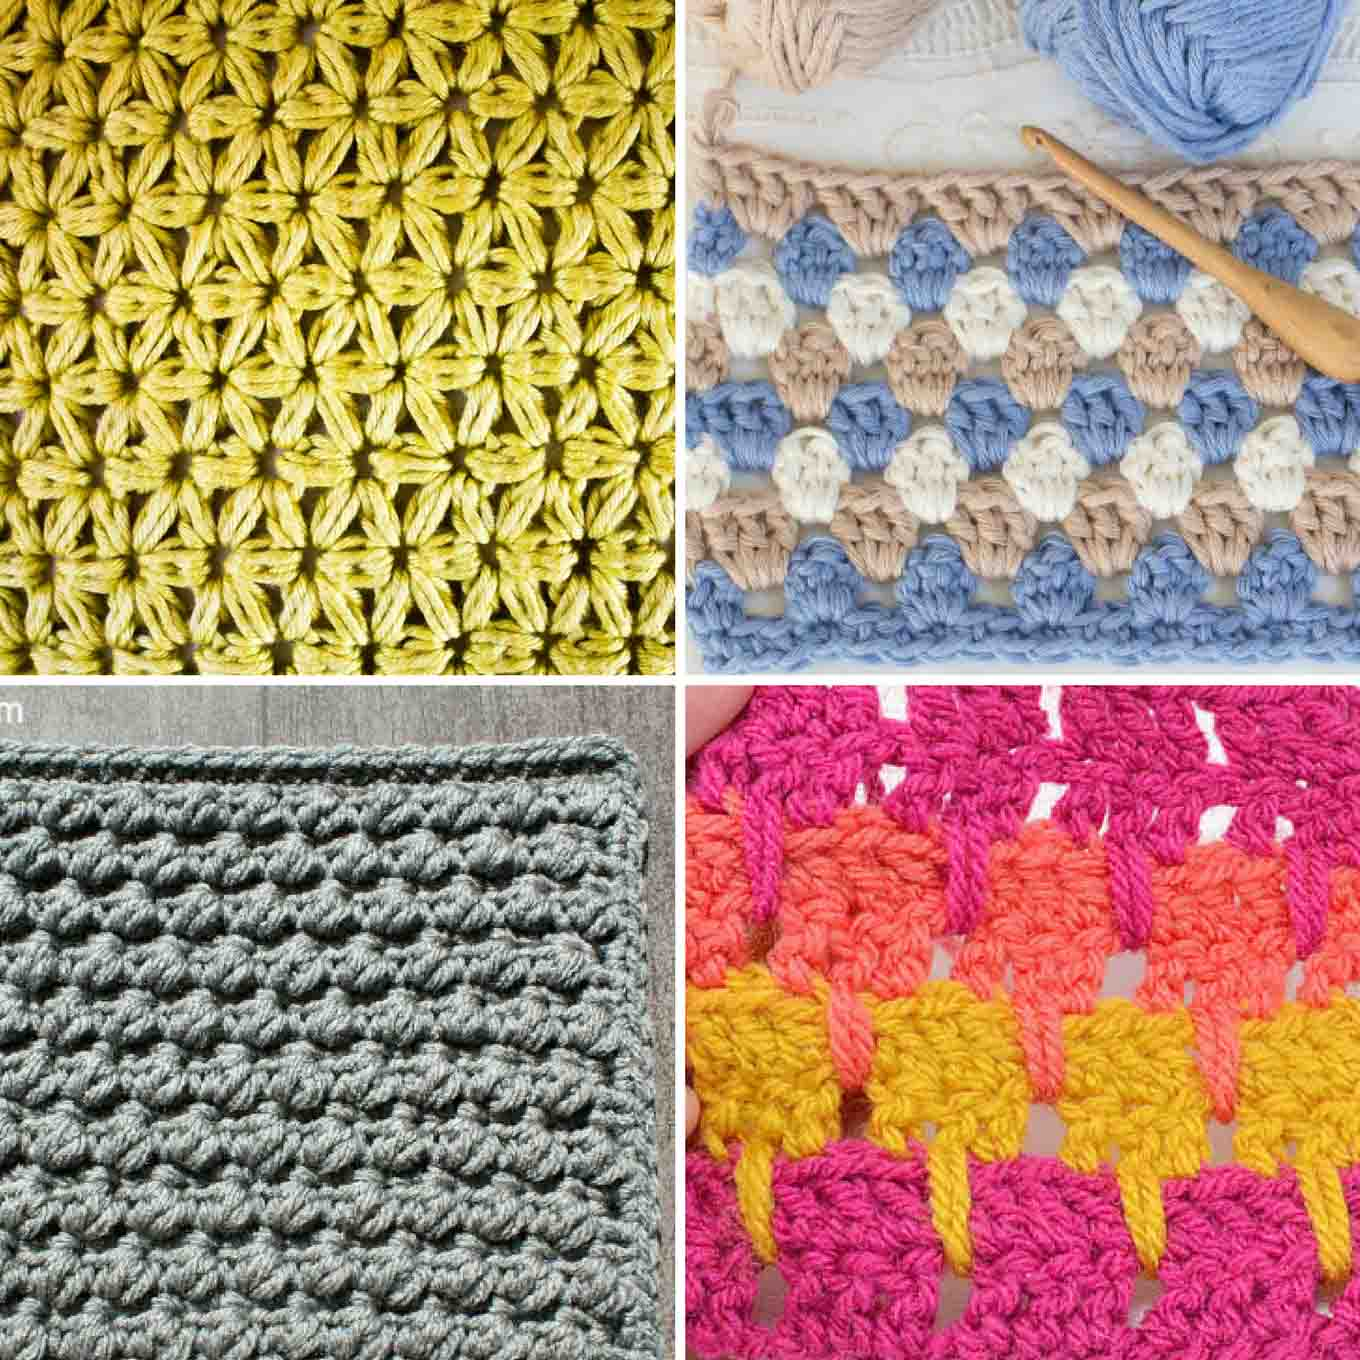 25+ crochet stitches for blankets and afghans - make u0026 do crew znmcmdk